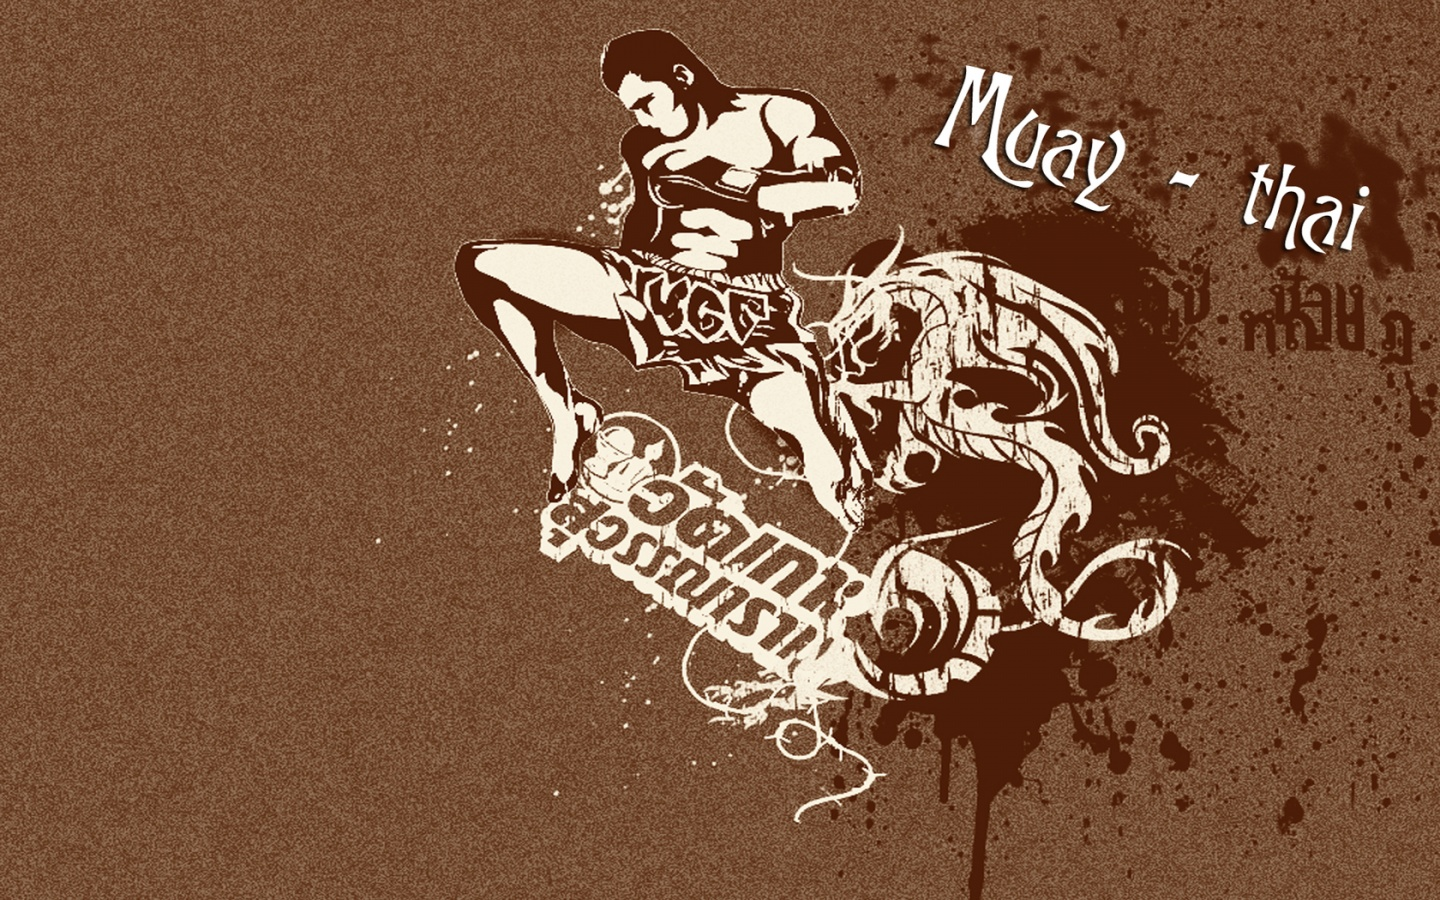 Muay Thai Wallpapers 1440x900 675380